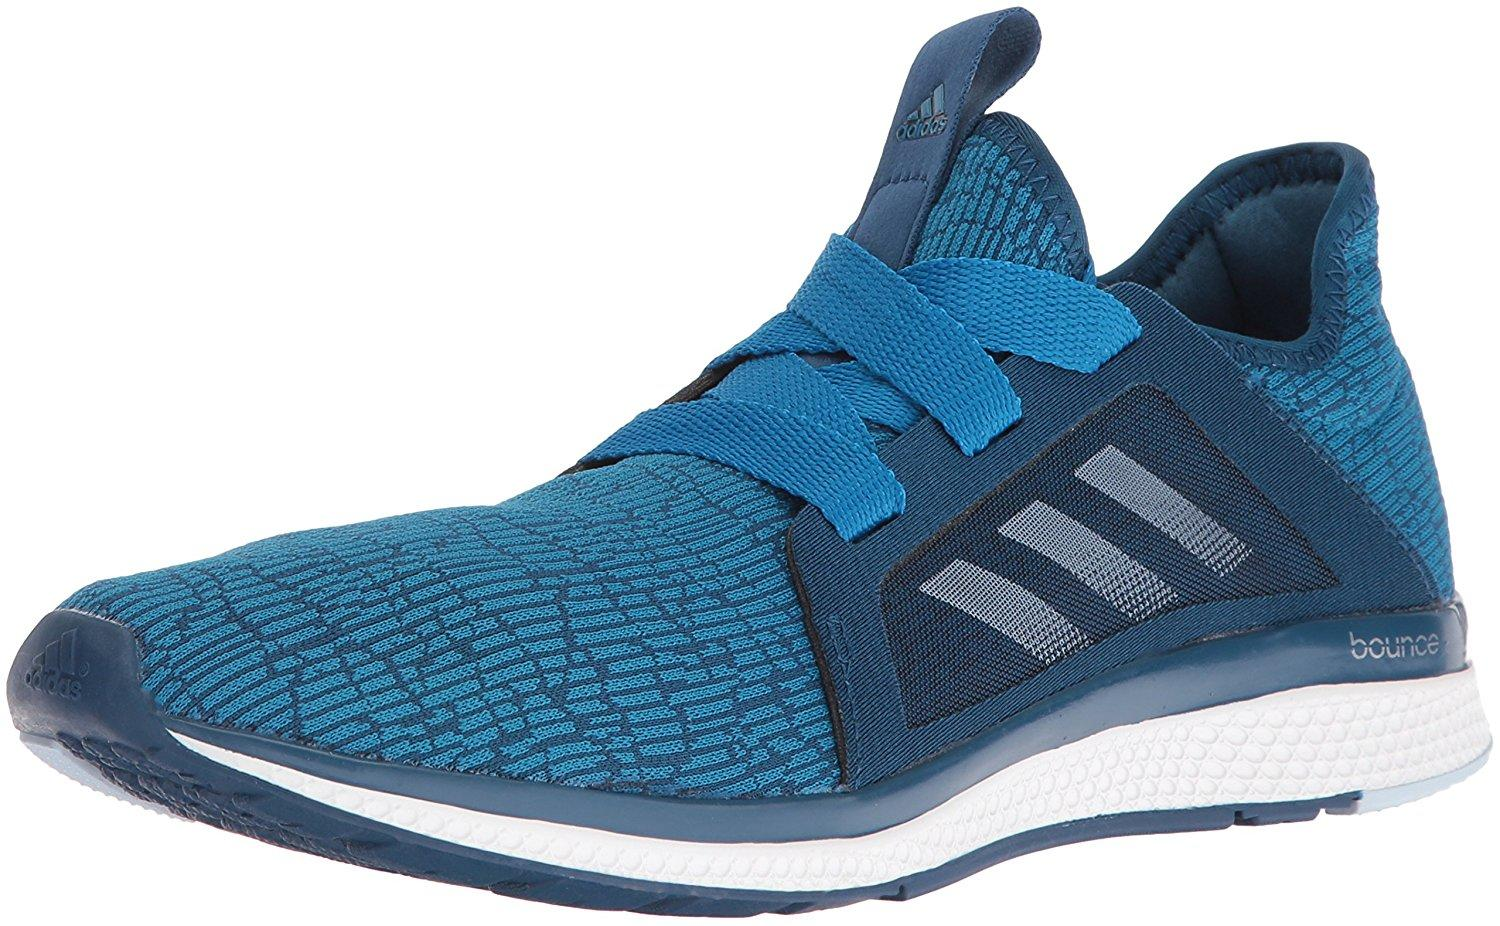 A three quarter view of the Adidas Edge Lux